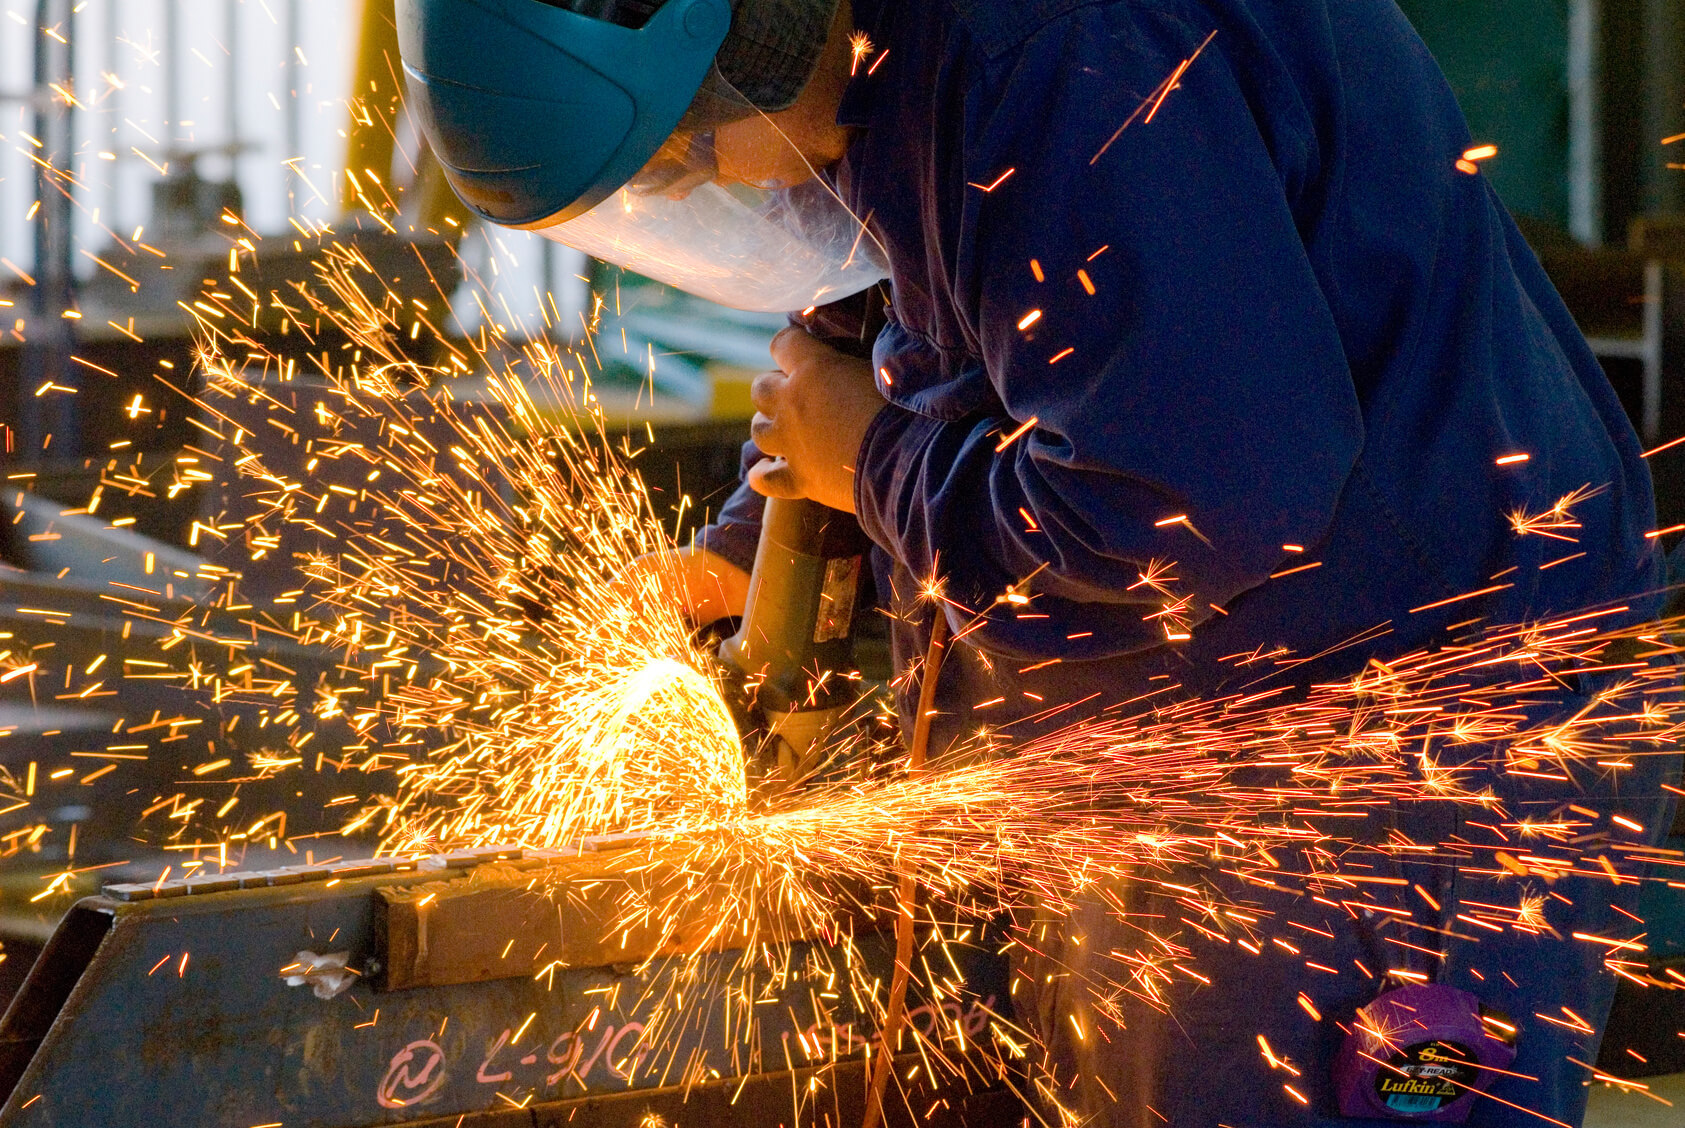 Men at work grinding steel with a grinder in a metal fabrication factory and throwing off bright orange sparks around him while he works